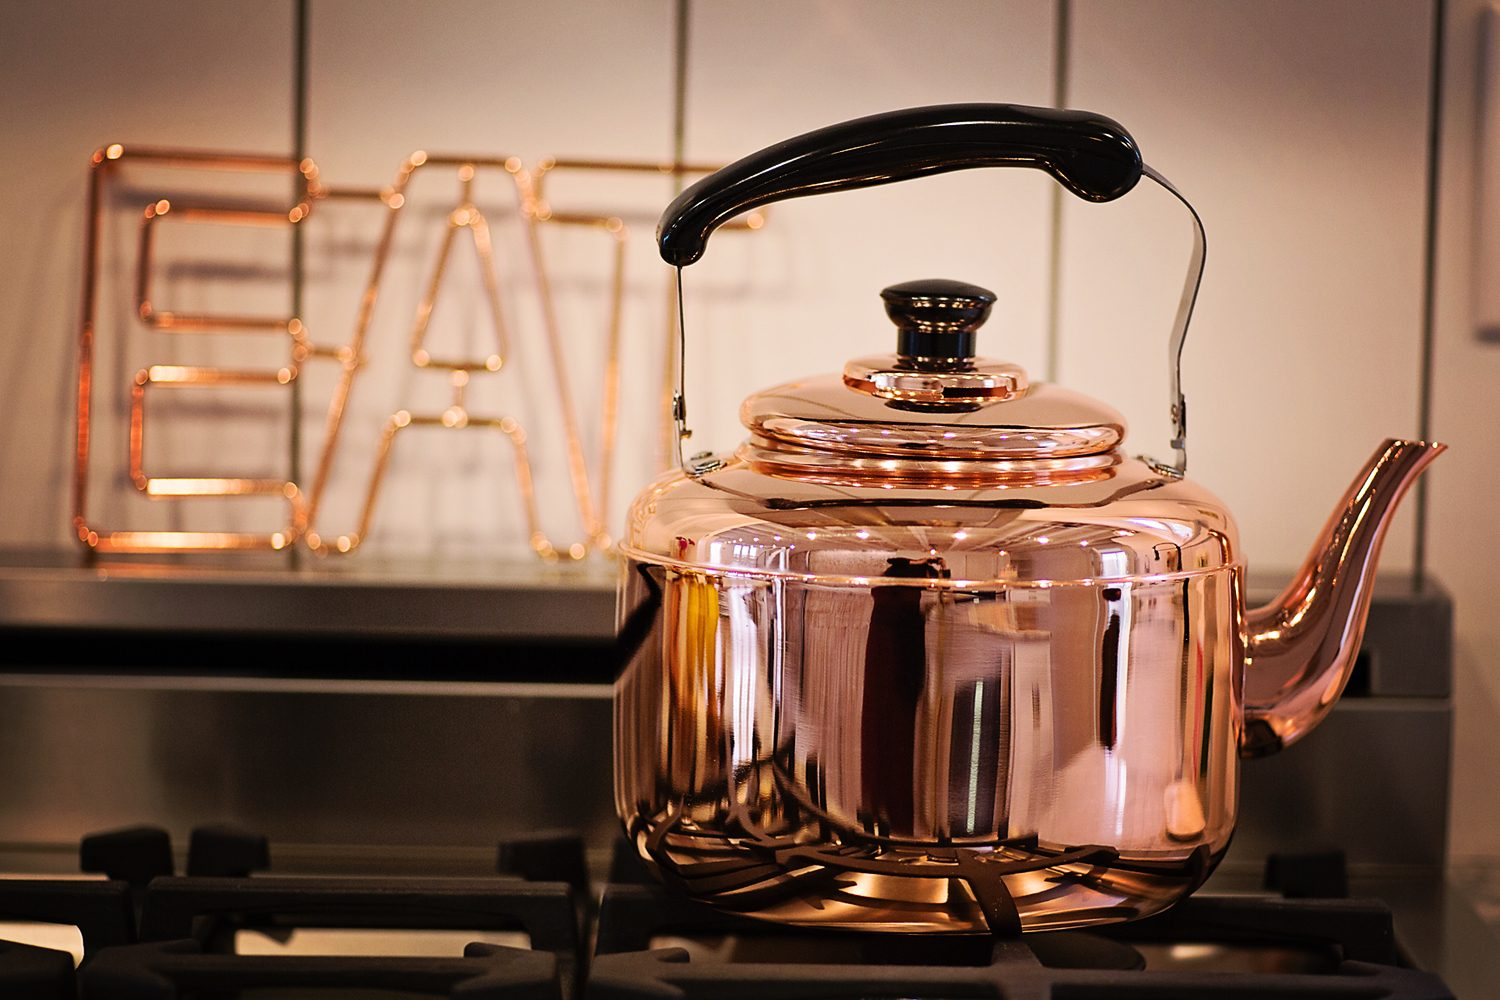 The Motherchic kitchen with copper kettle and eat sign